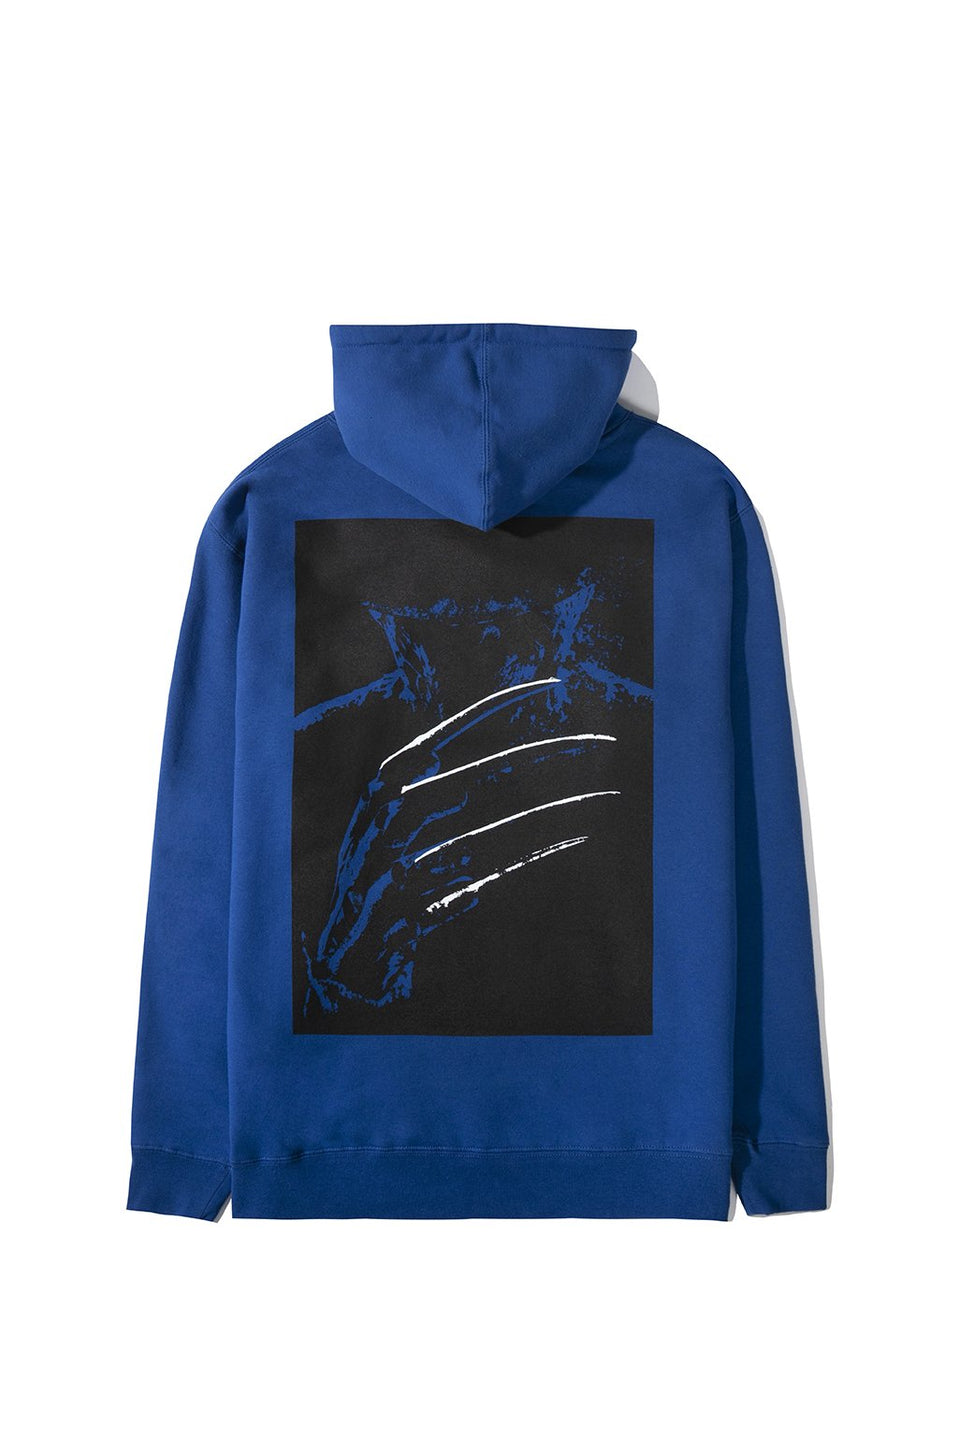 The Hundreds Cover Pullover Hoodie Royal Blue